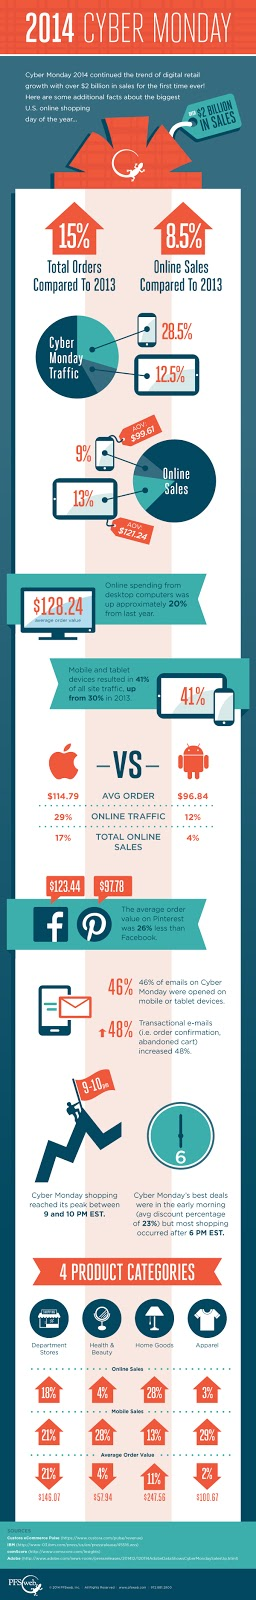 Infographic with lots of graphs and statistics about 2014 Cyber Monday